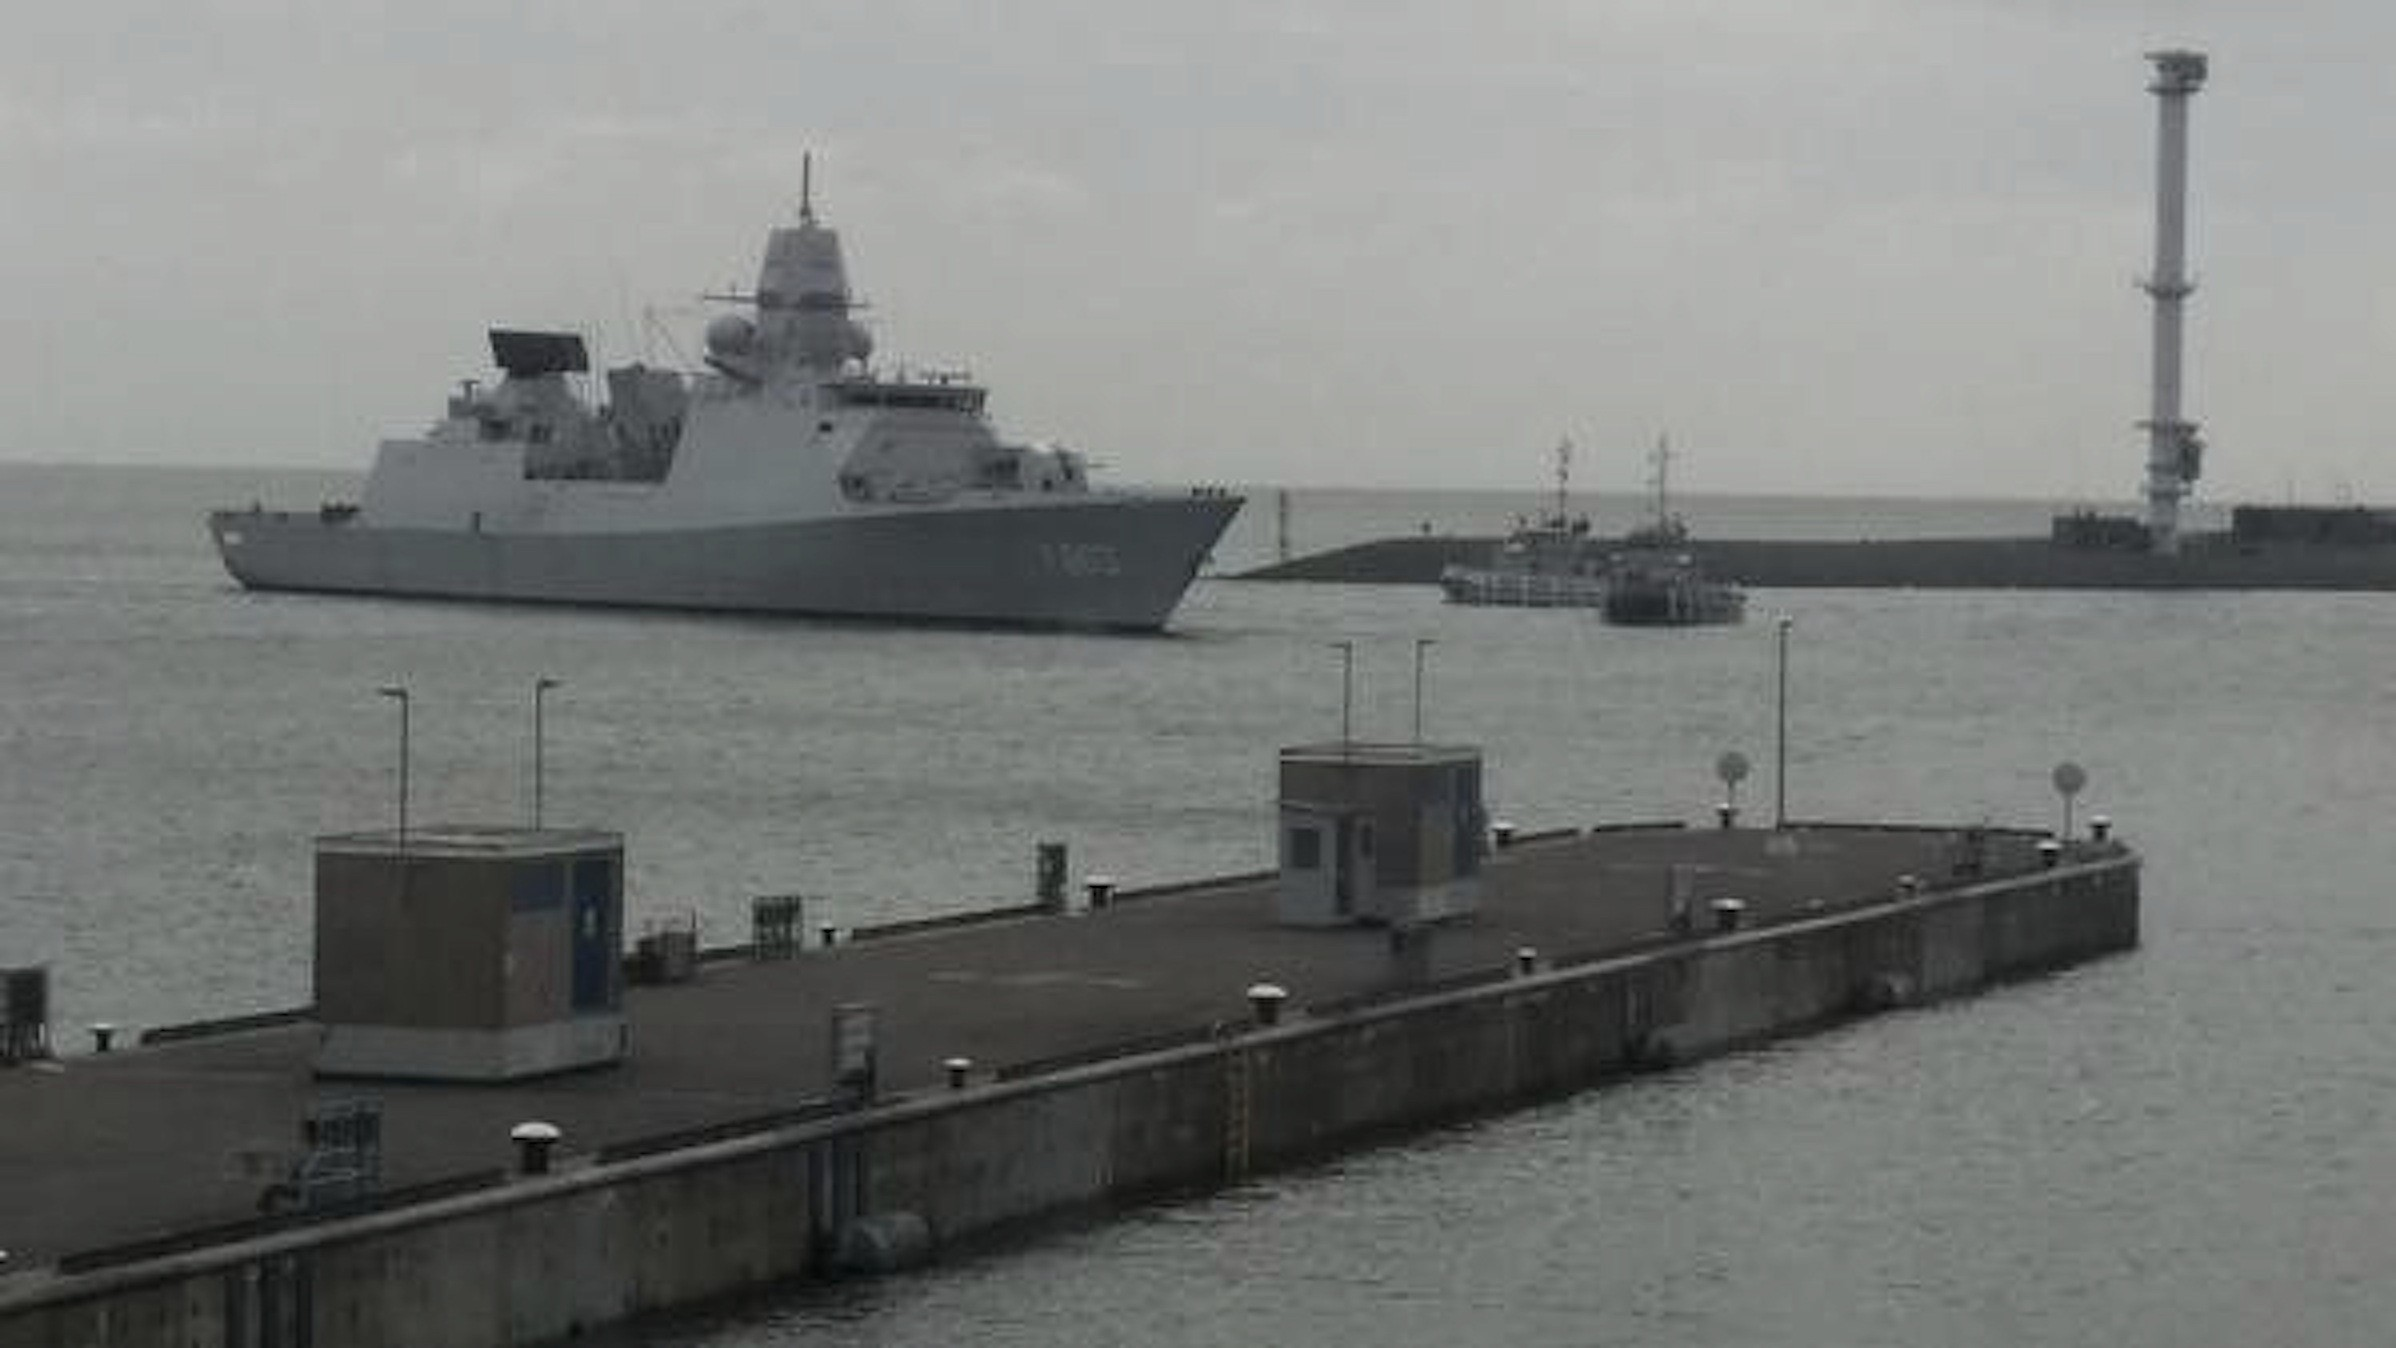 Zr. Ms. Tromp terug in Den Helder (foto Hero Smit)